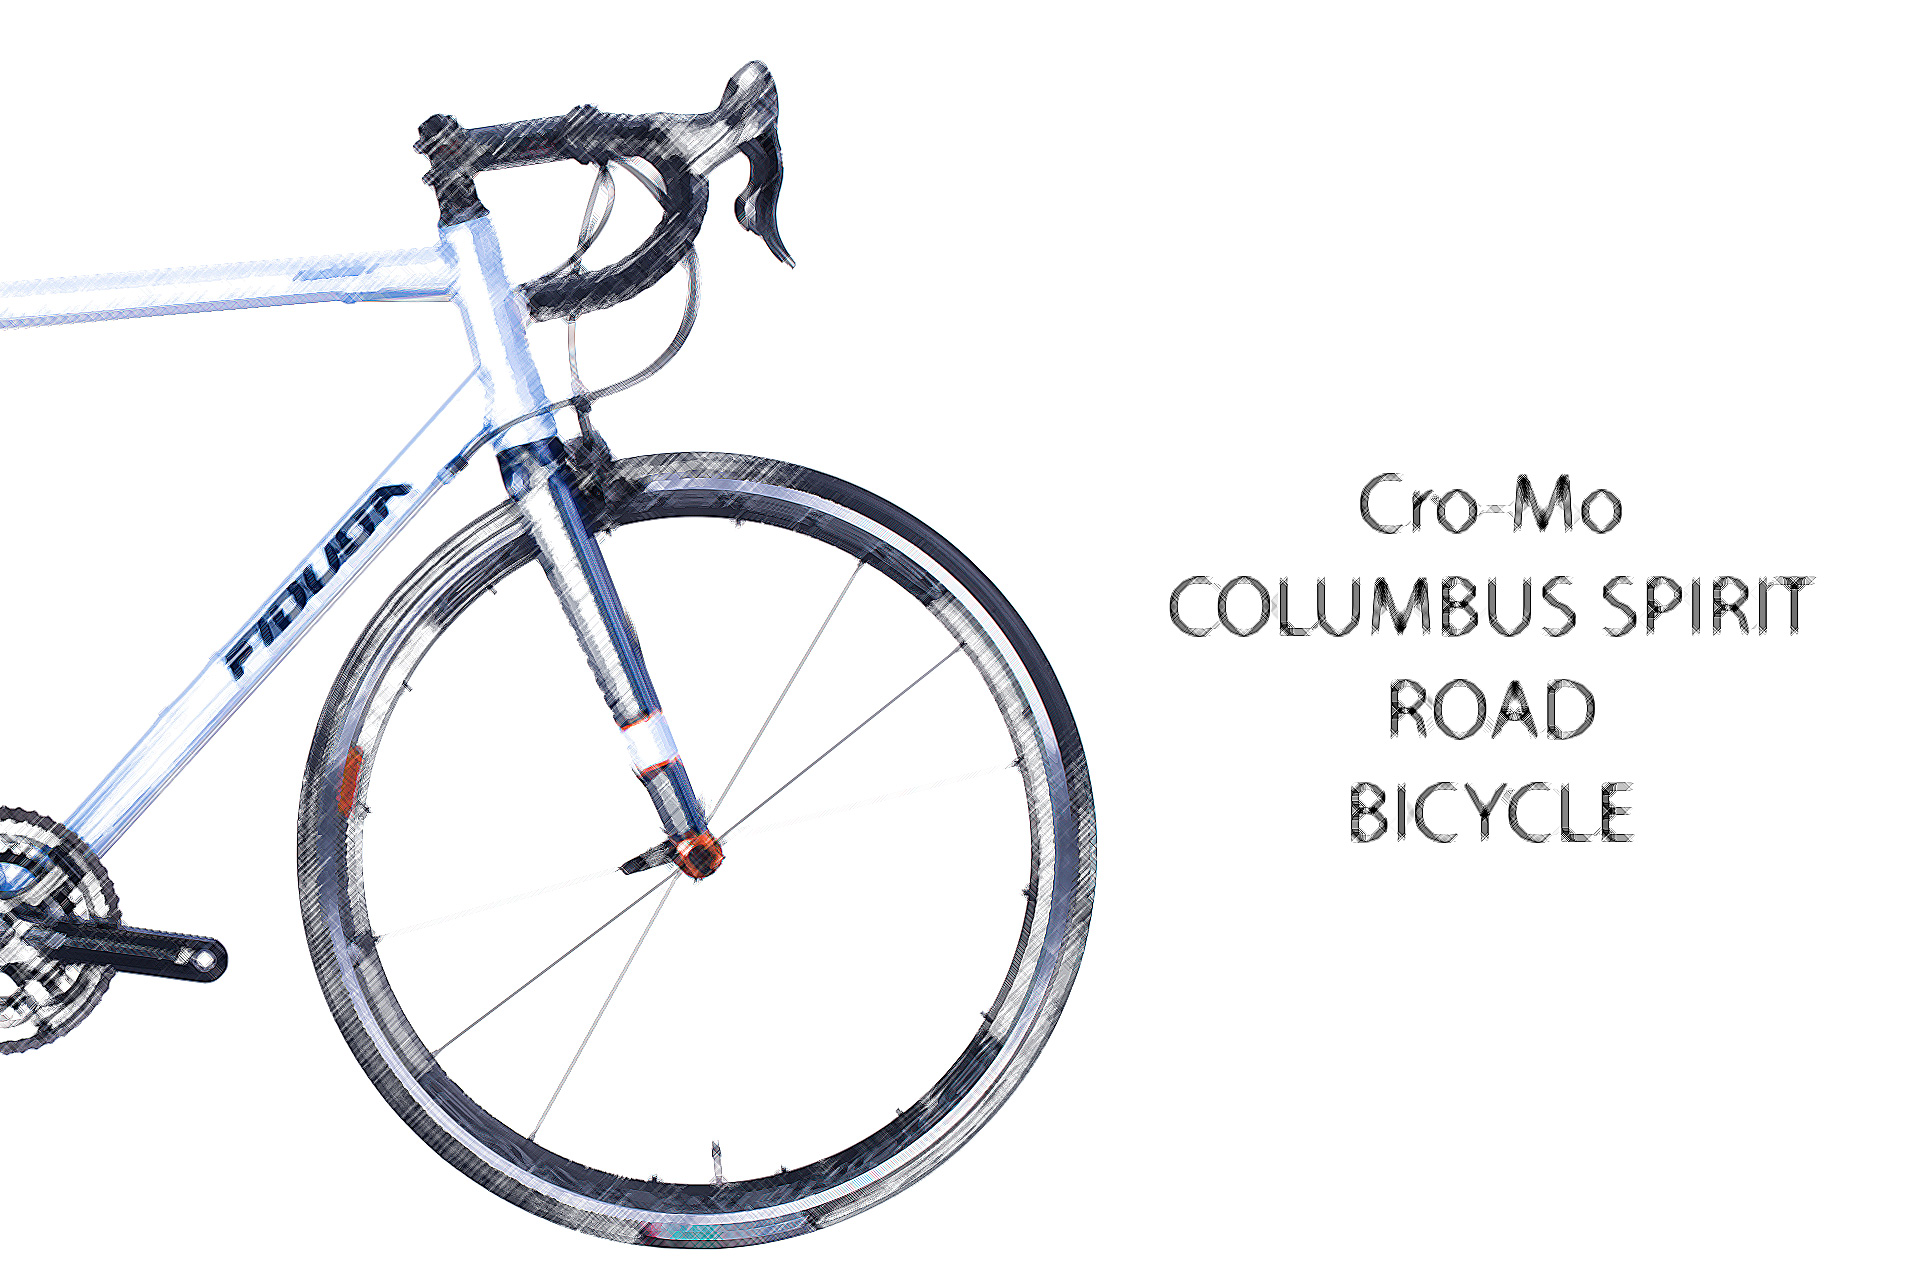 Cro-Mo-Columbus-Spirit-Road-Bicycle-5 Cro-Mo Columbus Spirit Road Bicycle